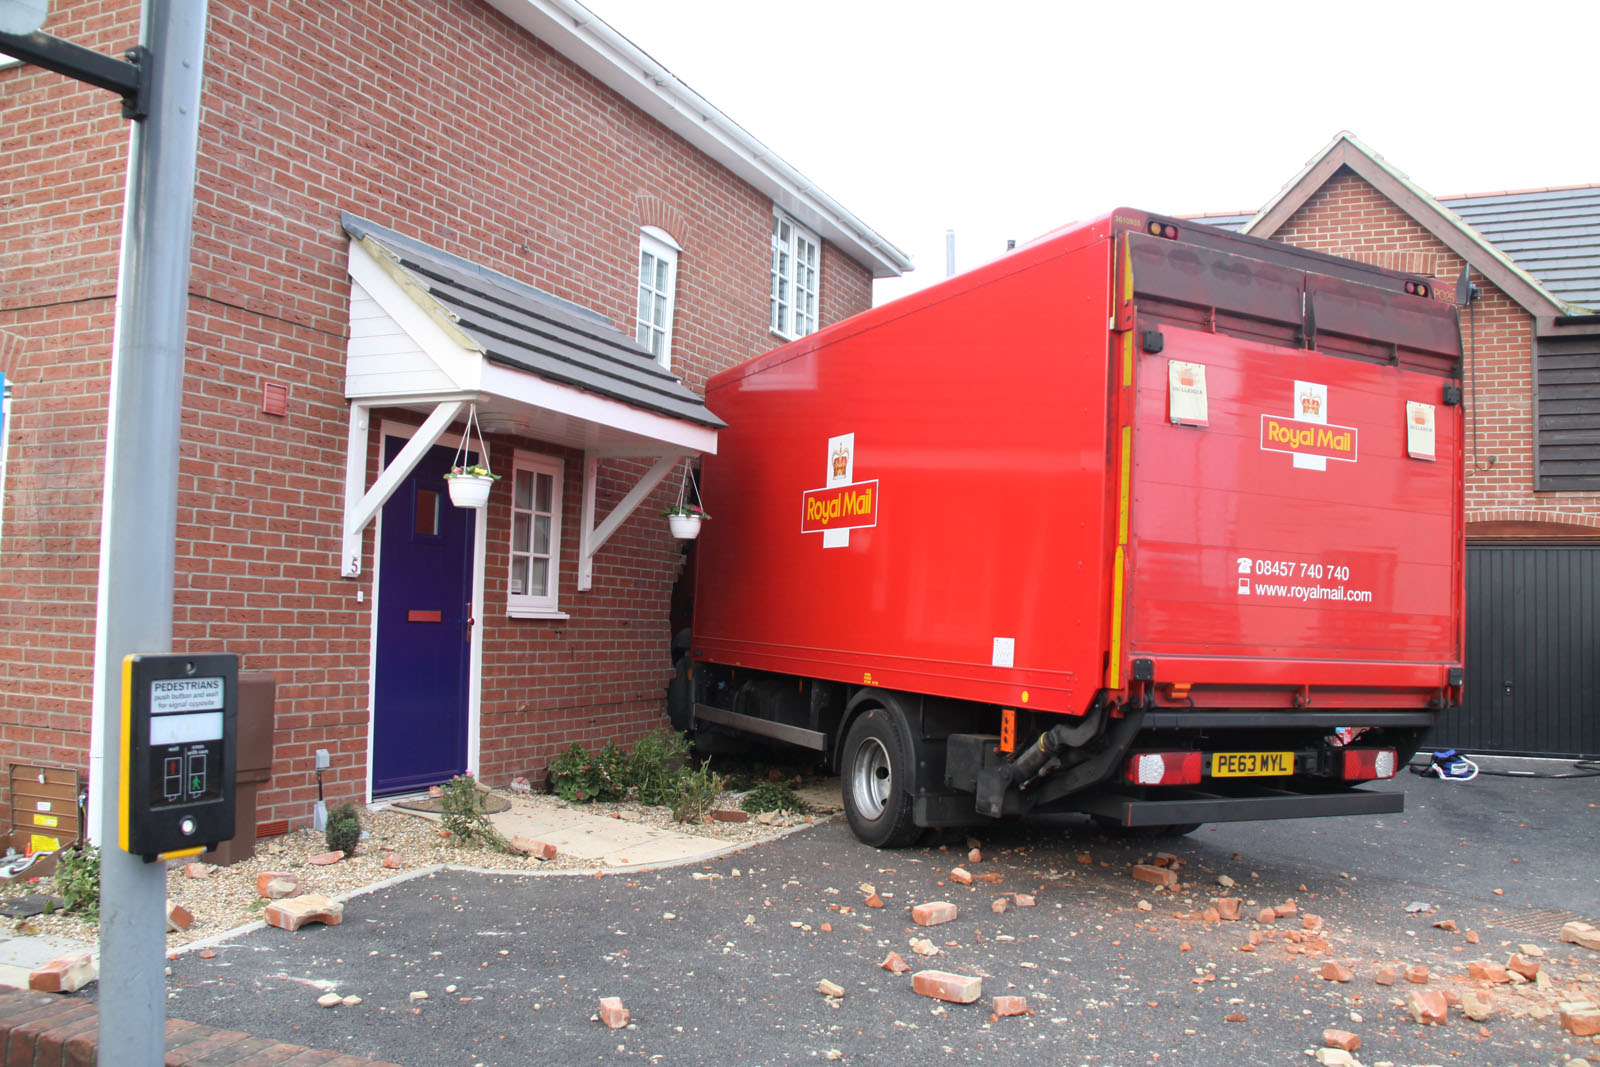 UPDATED: Royal Mail lorry smashes into house